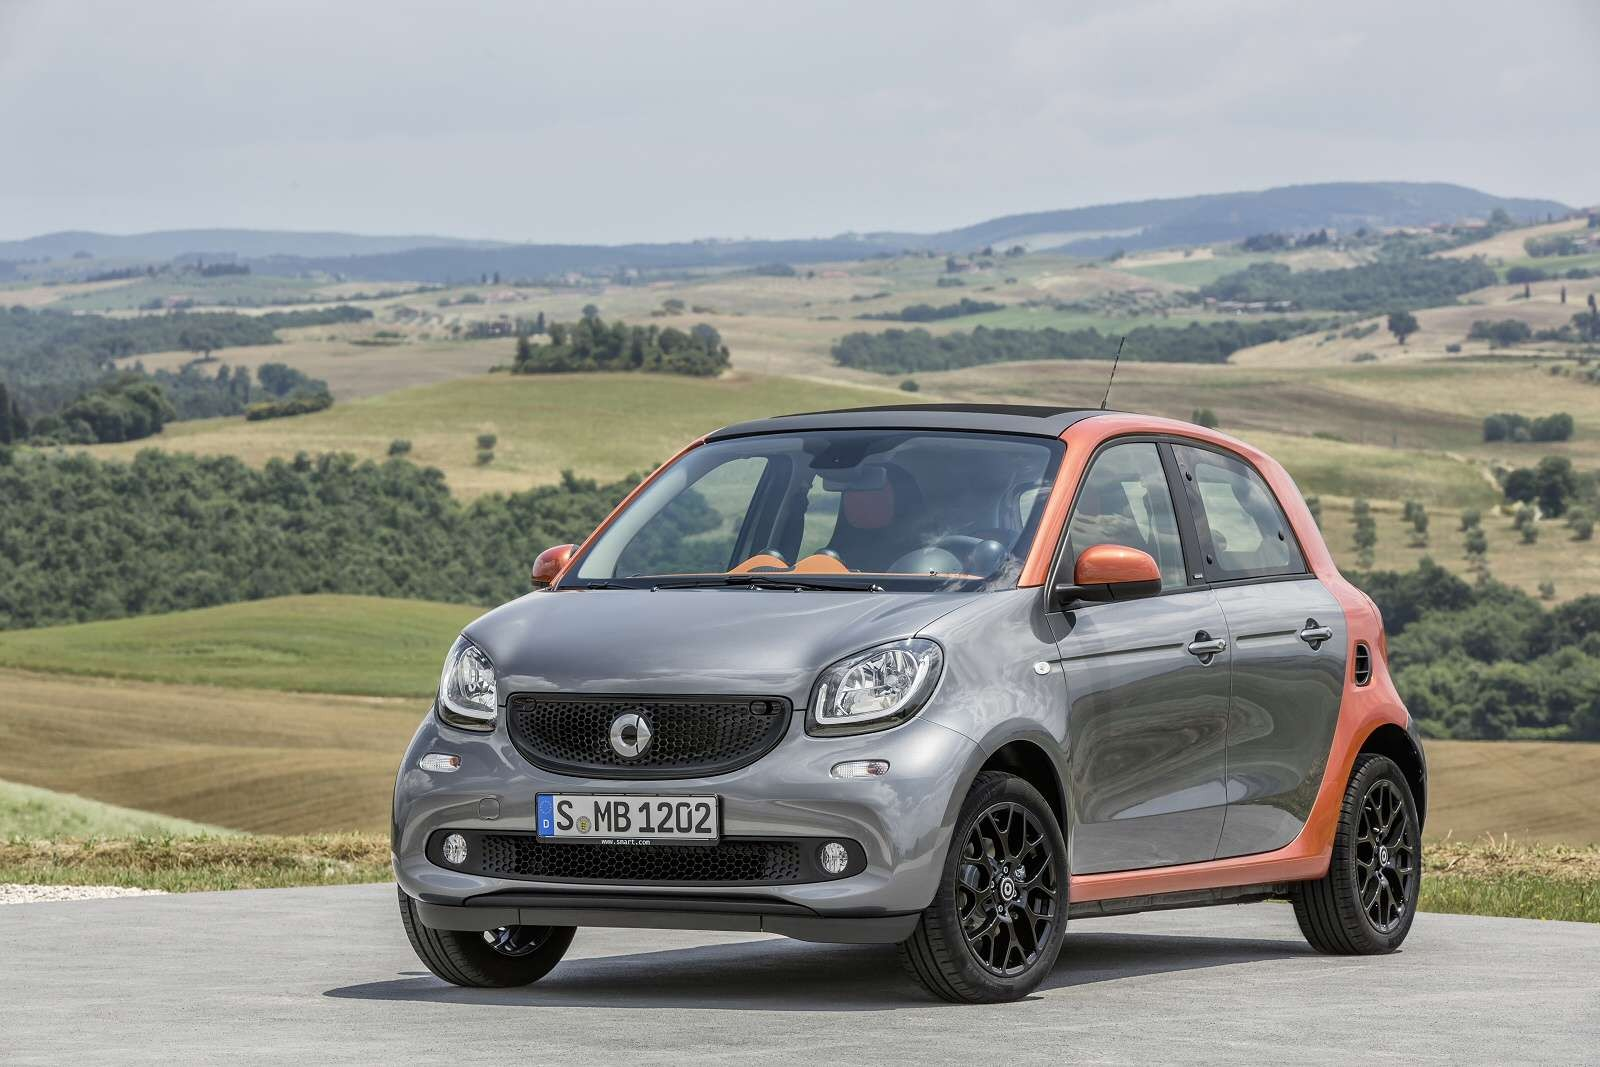 Smart Car Lease >> Unbeatable Smart Car Lease Deals And Offers Gb Vehicle Leasing